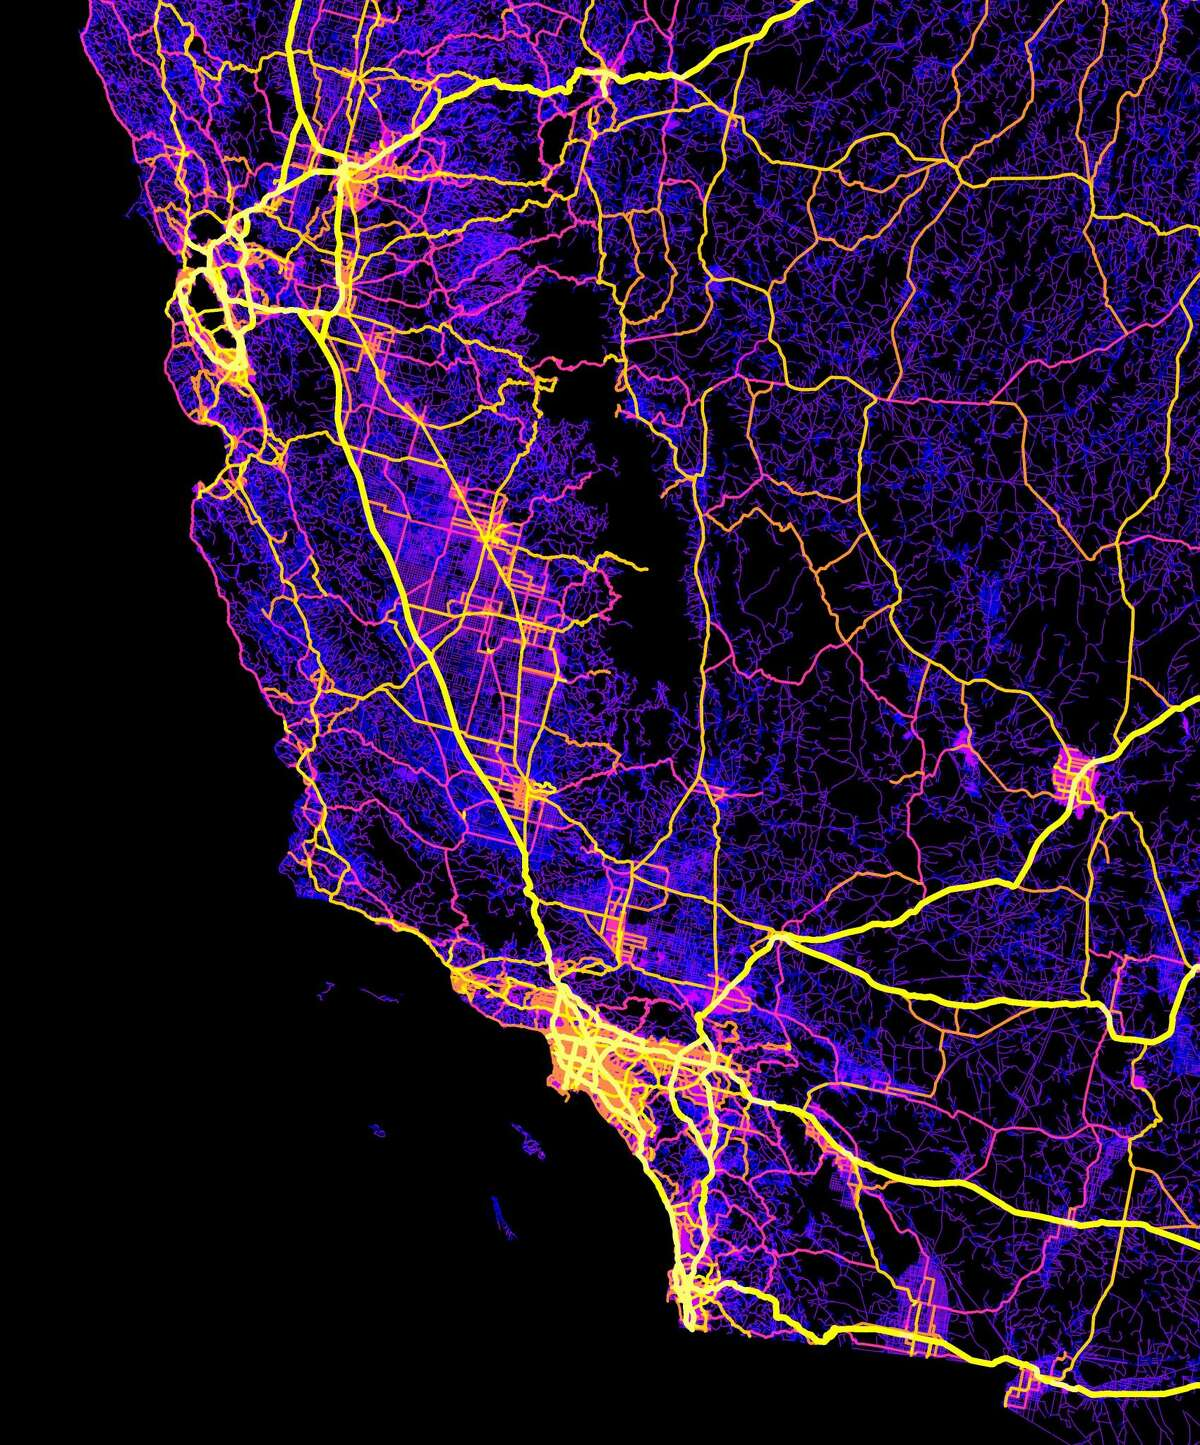 Robbi Bishop-Taylor, a doctoral student in geography at the University of New South Wales in Sydney, Australia, creates colorful maps of roadways using open-source online data sets.This map, created in October 2016, shows roads of Los Angeles, San Francisco, San Diego, Las Vegas and the southwest United States.